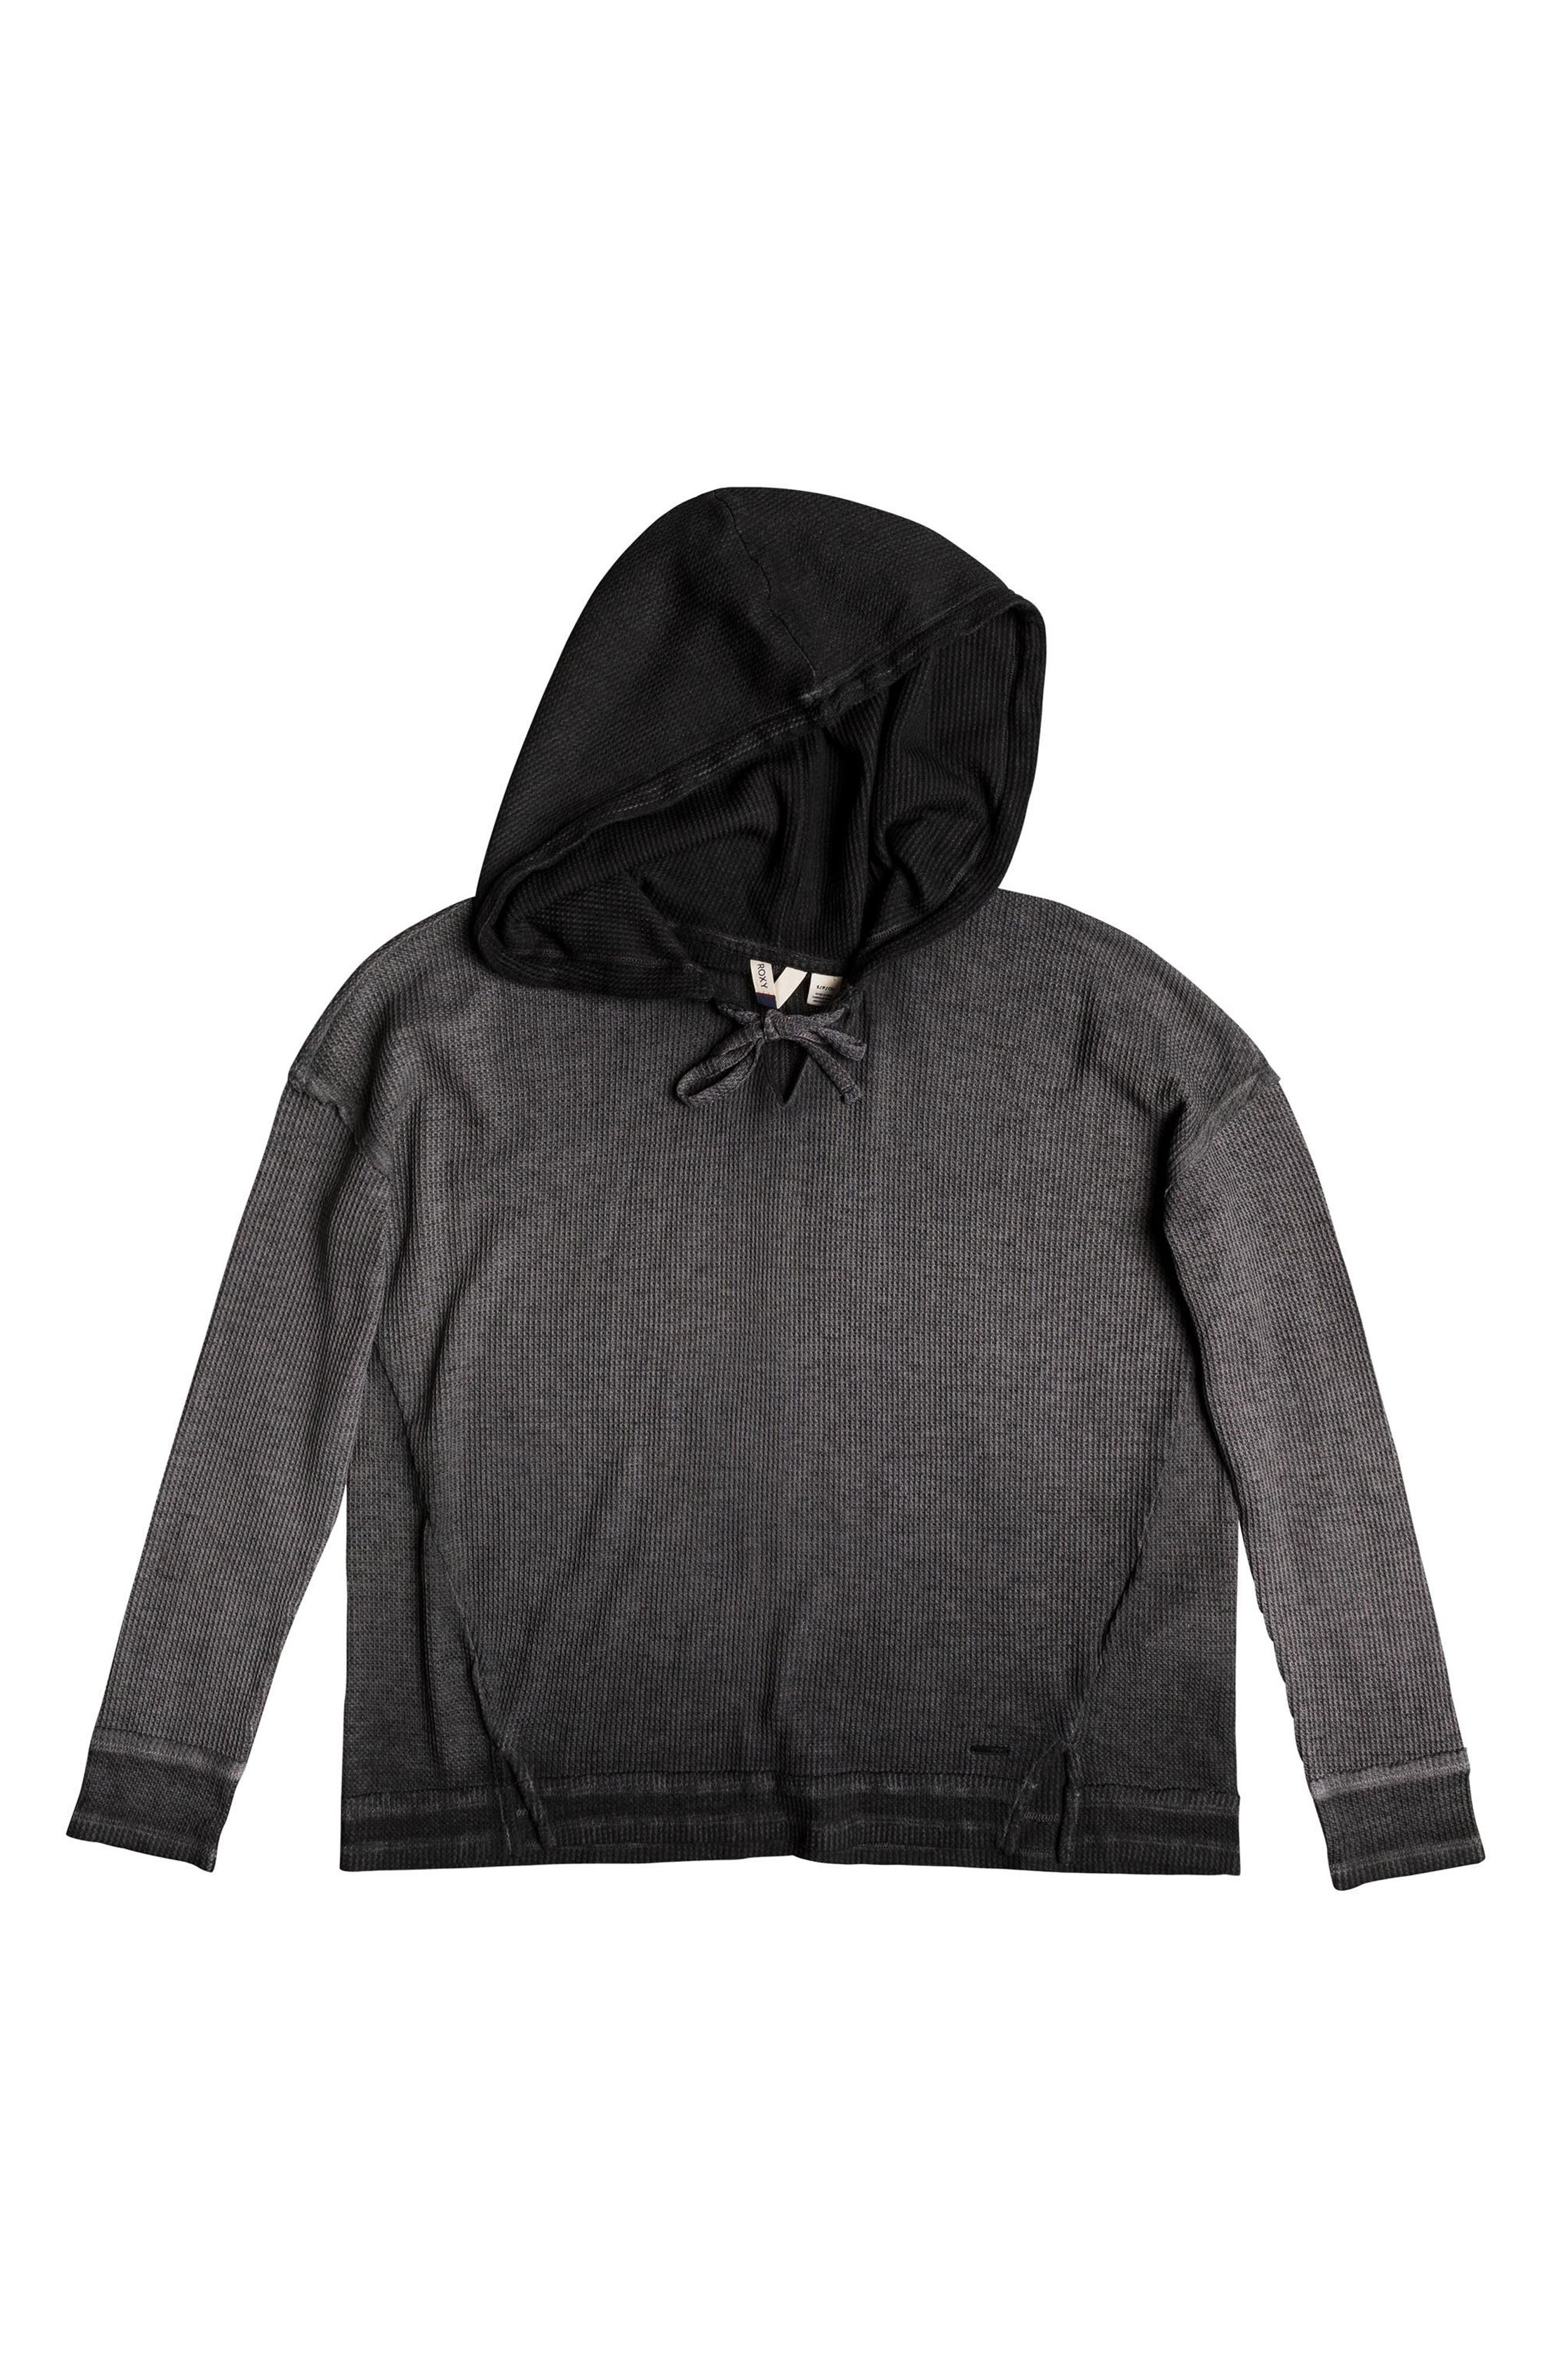 Wanted and Wild Hooded Thermal Top,                             Alternate thumbnail 4, color,                             002